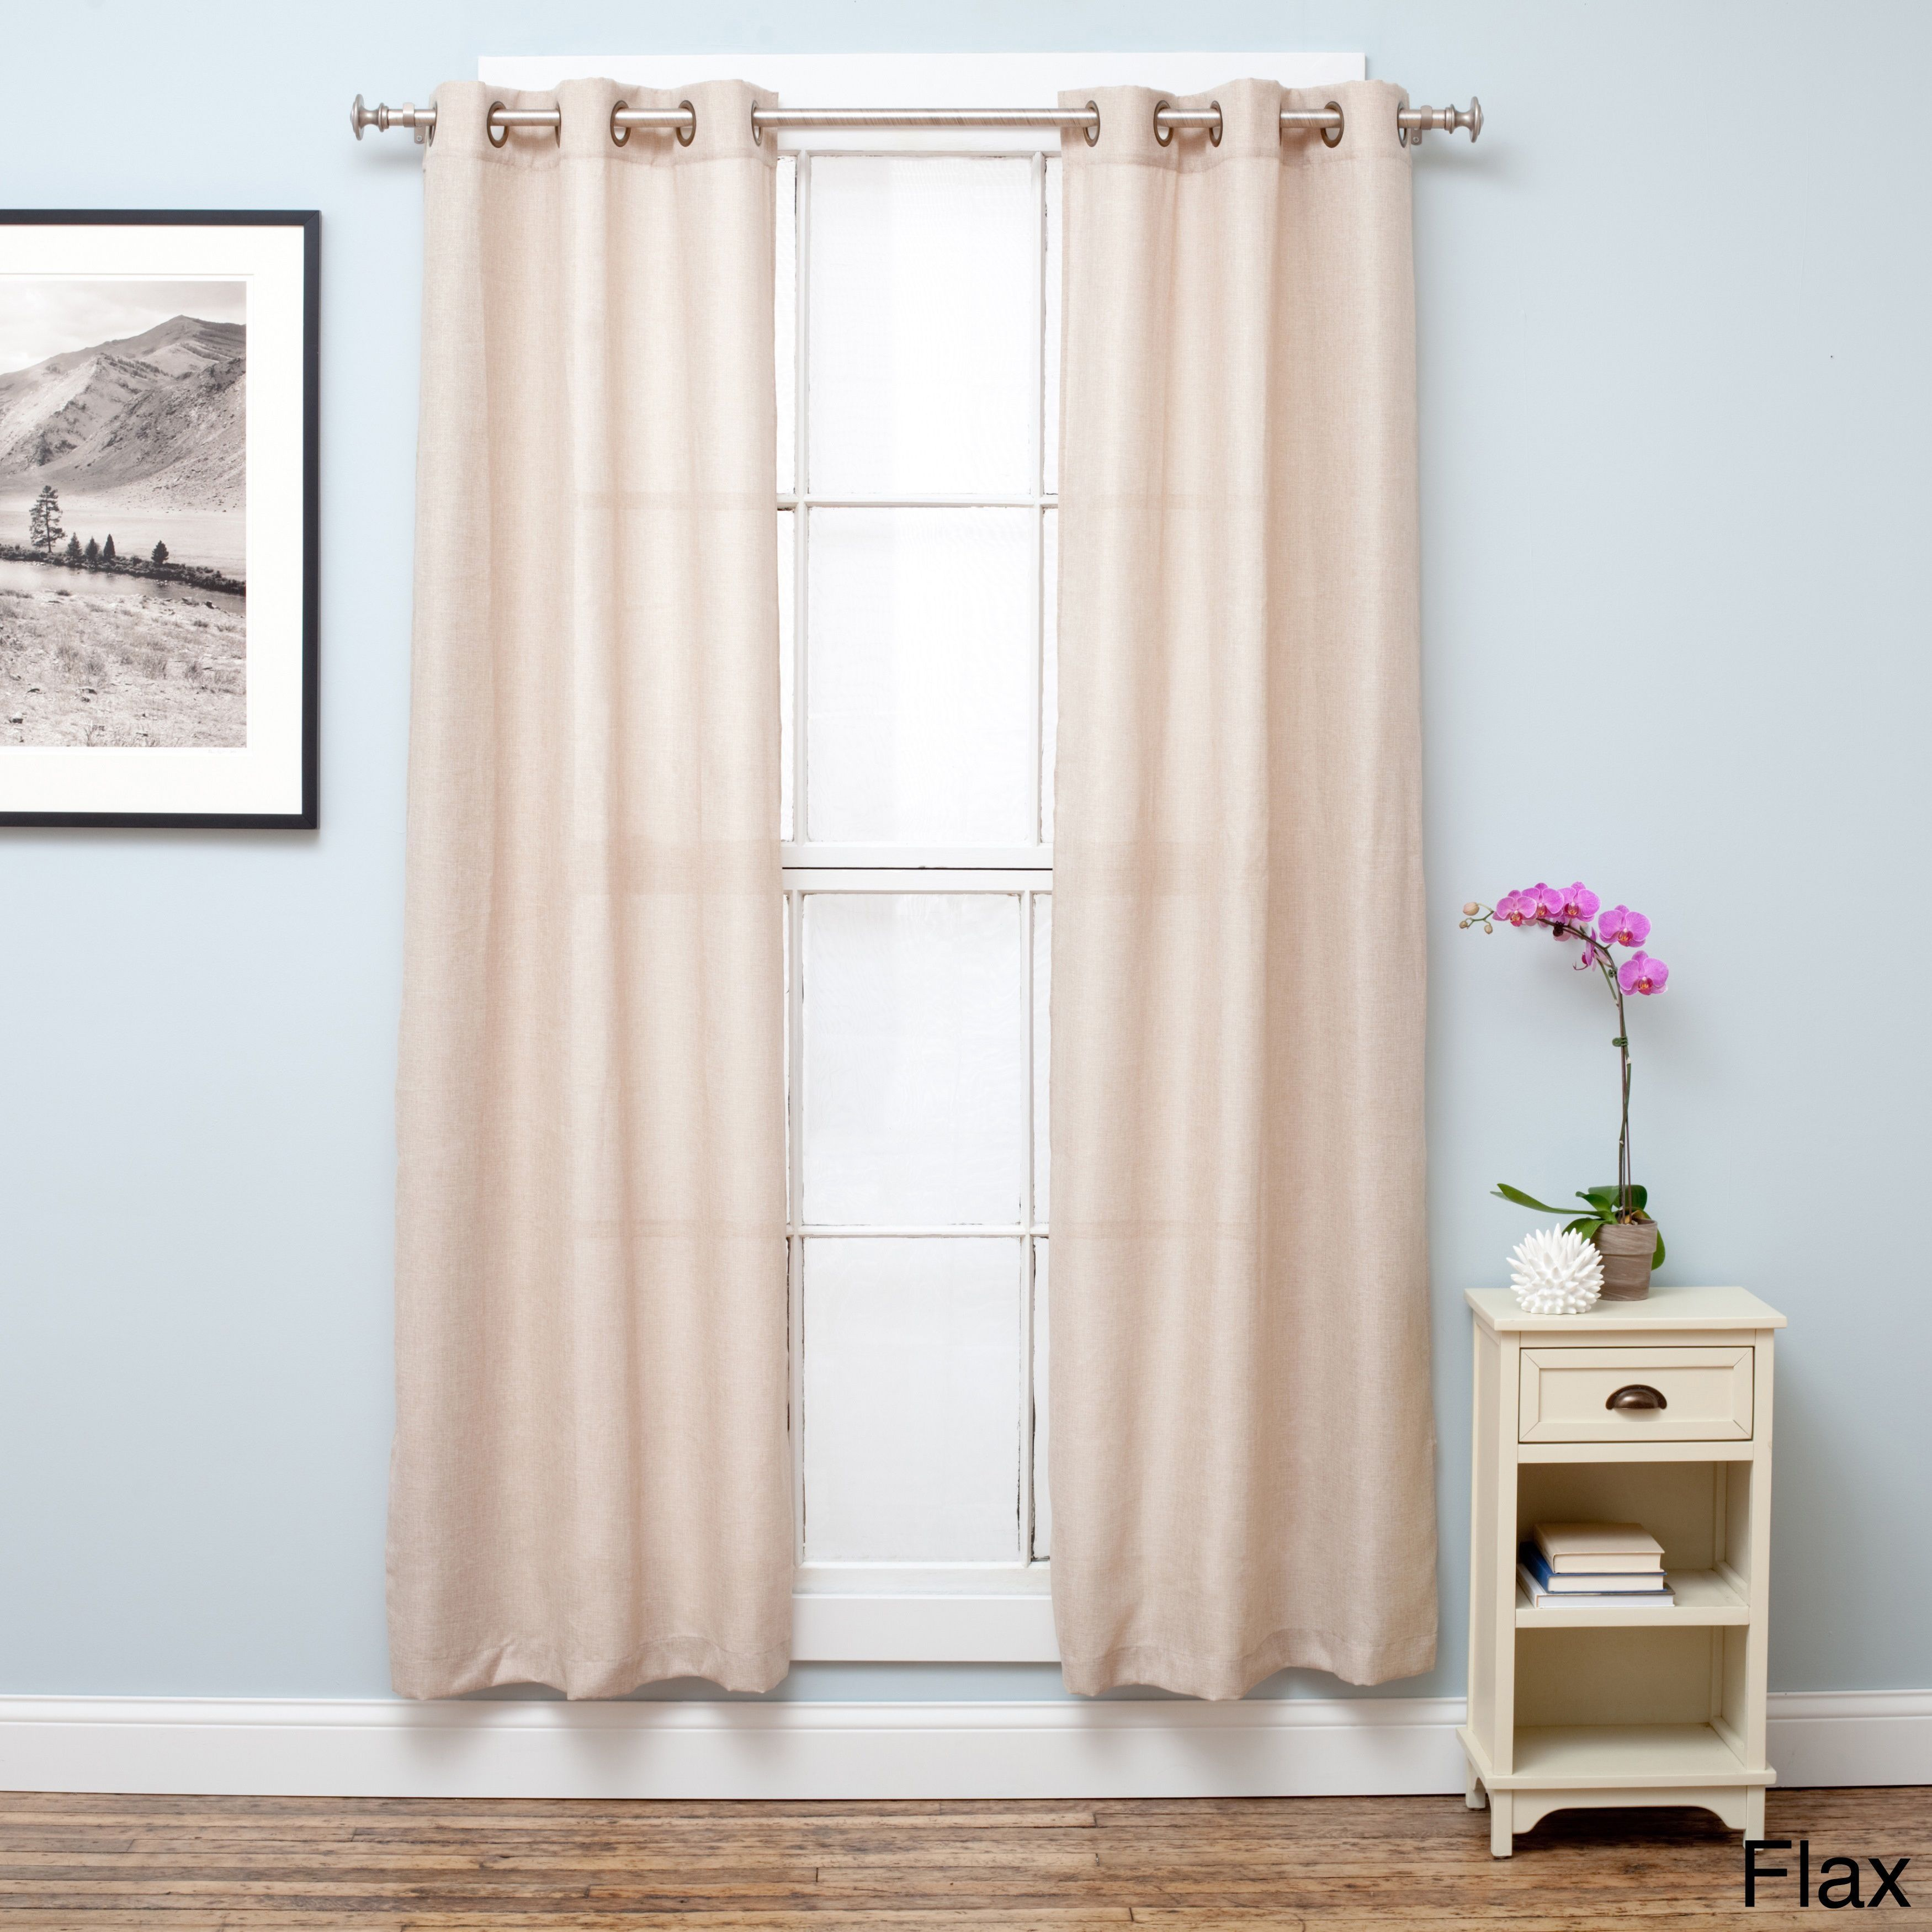 baby panels sweet window drapes come p decor sail qlt nursery jojo designs curtain prod away curtains collection hei chambray wid